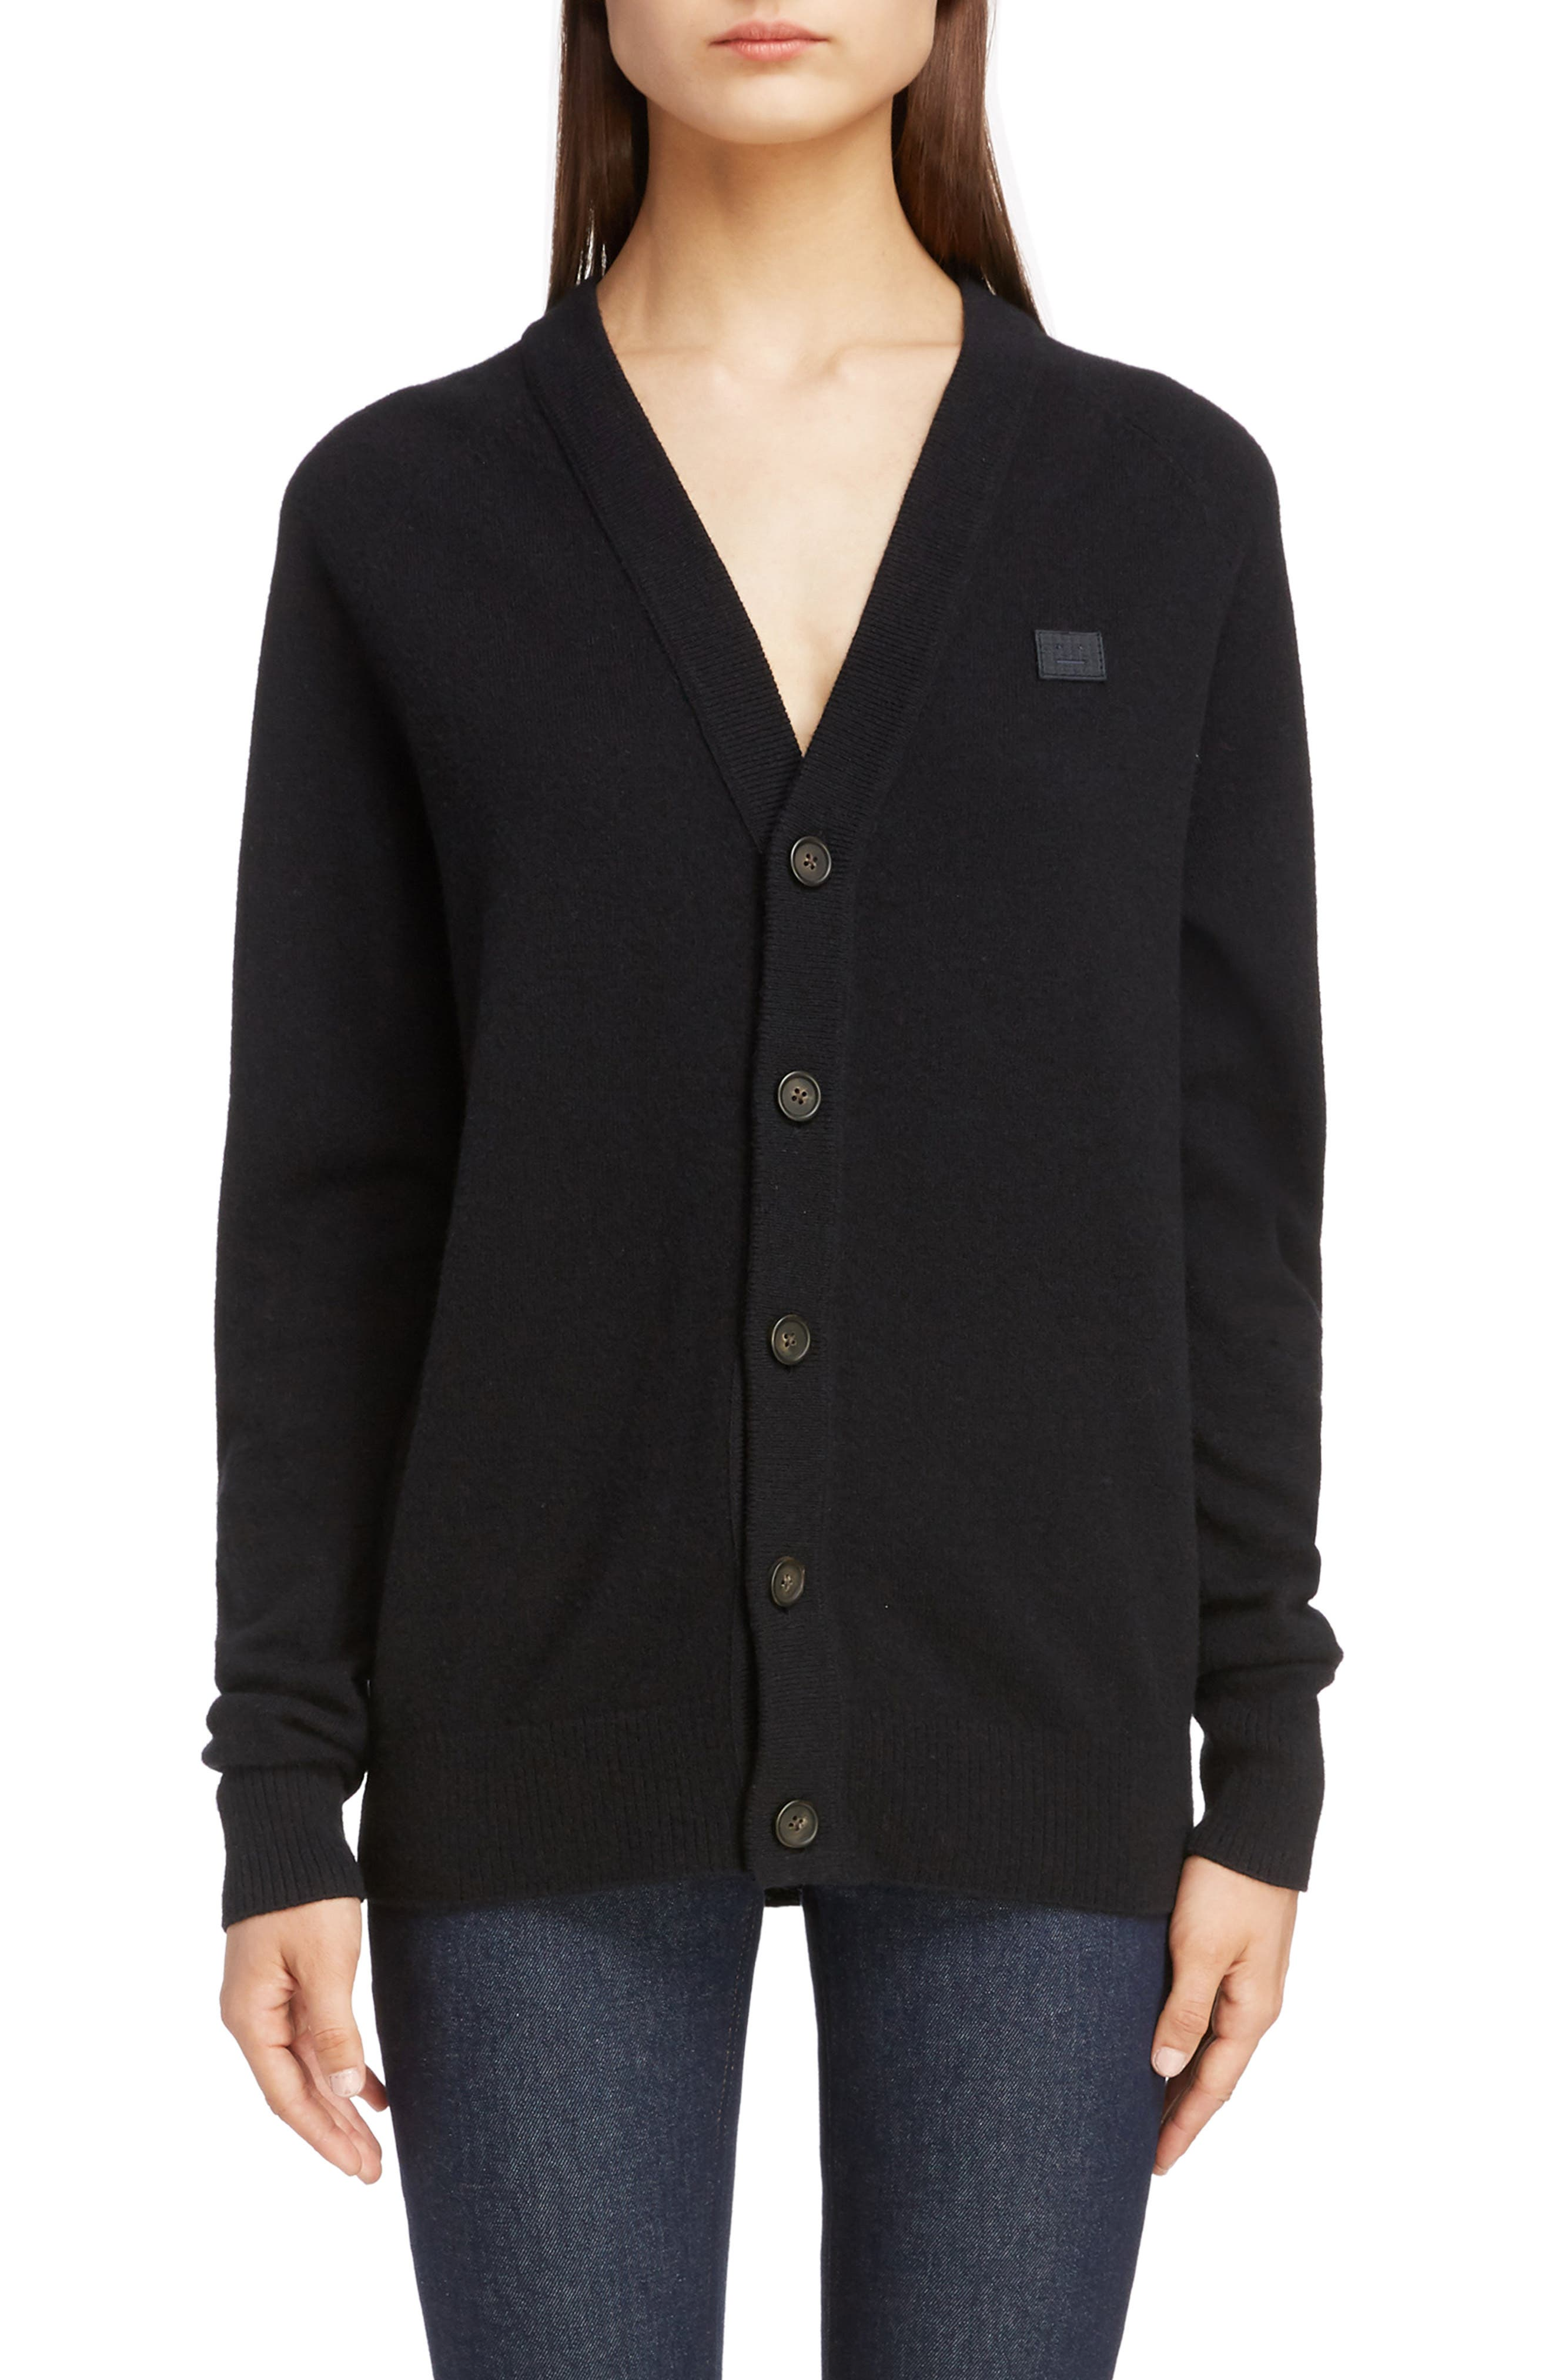 Neve Wool Cardigan,                             Main thumbnail 1, color,                             BLACK